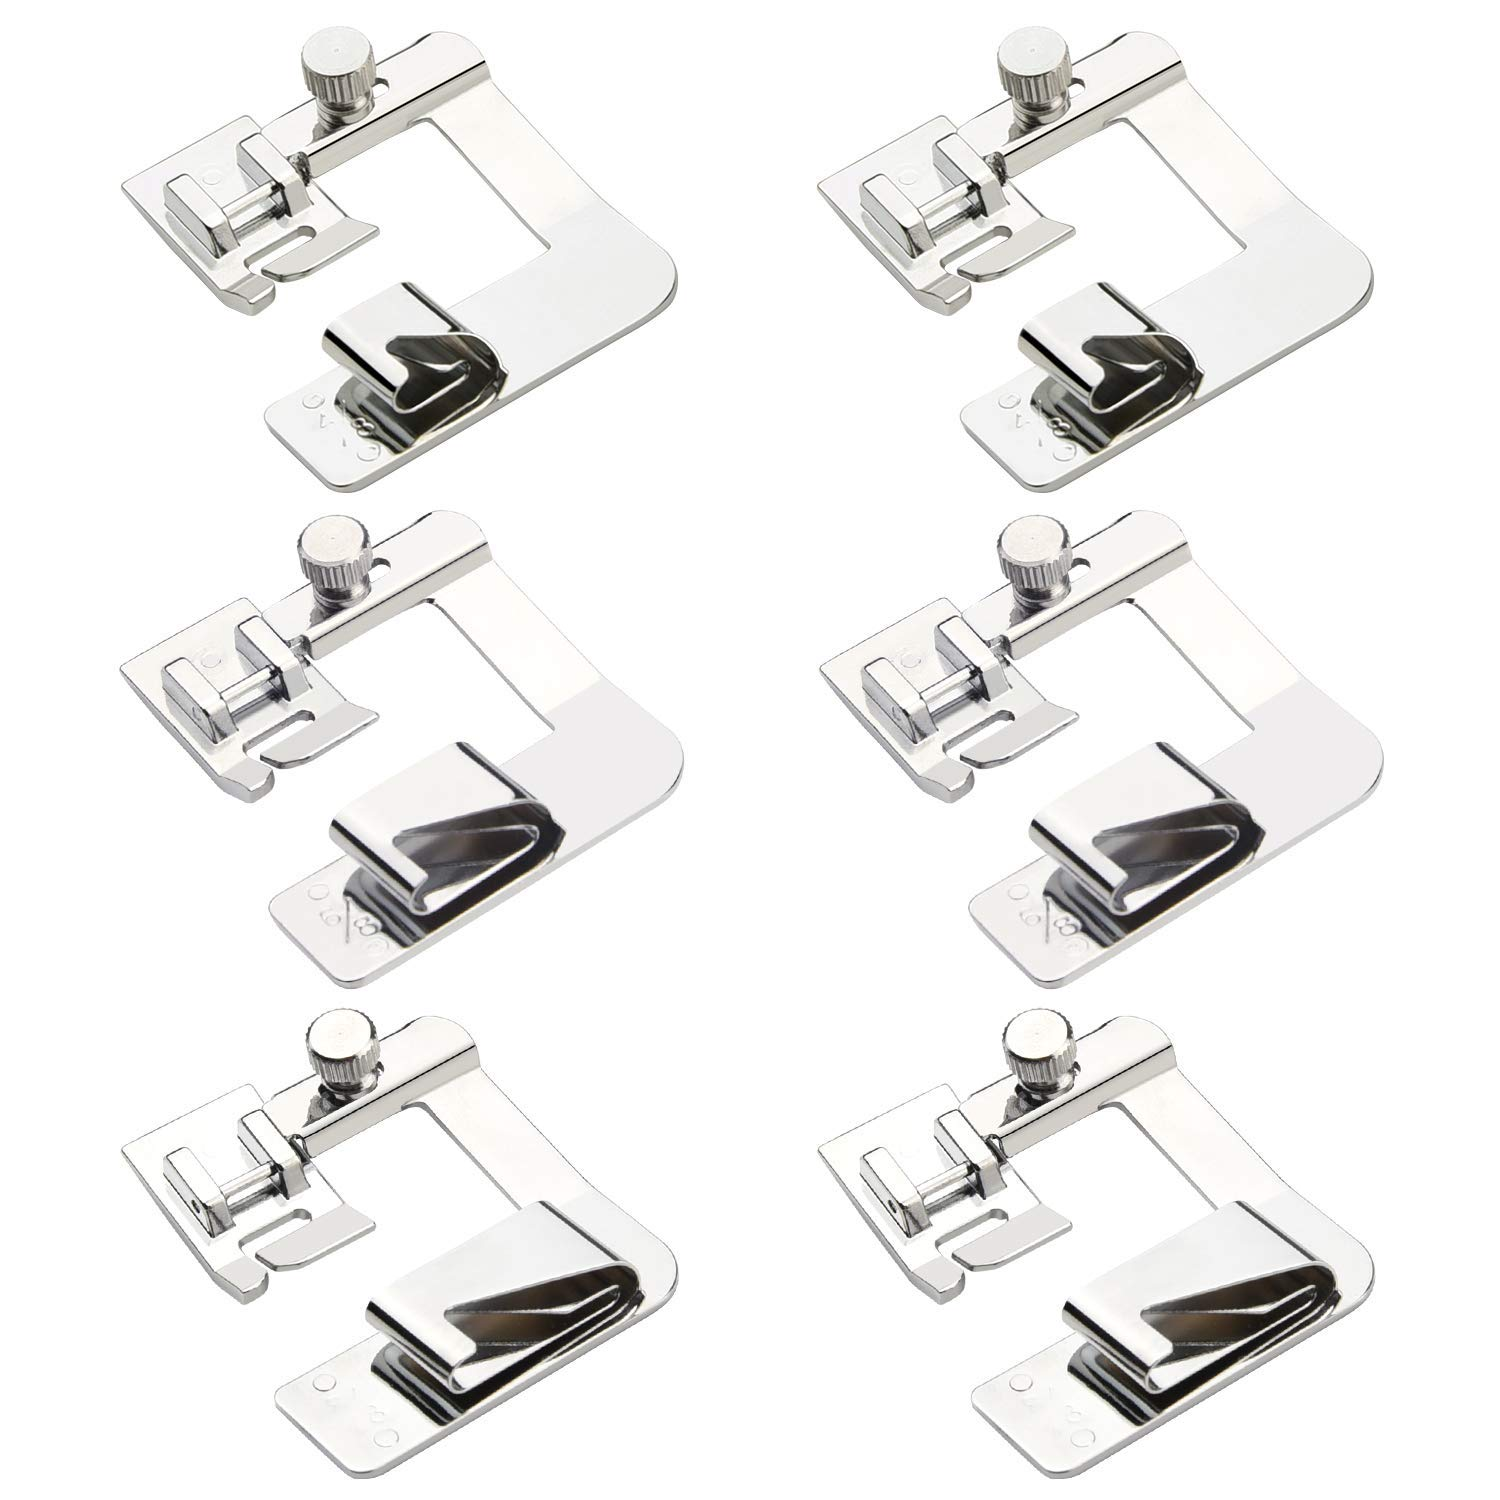 6pcs Wide Rolled Hem Presser Foot Adjustable Wide Foot Kit